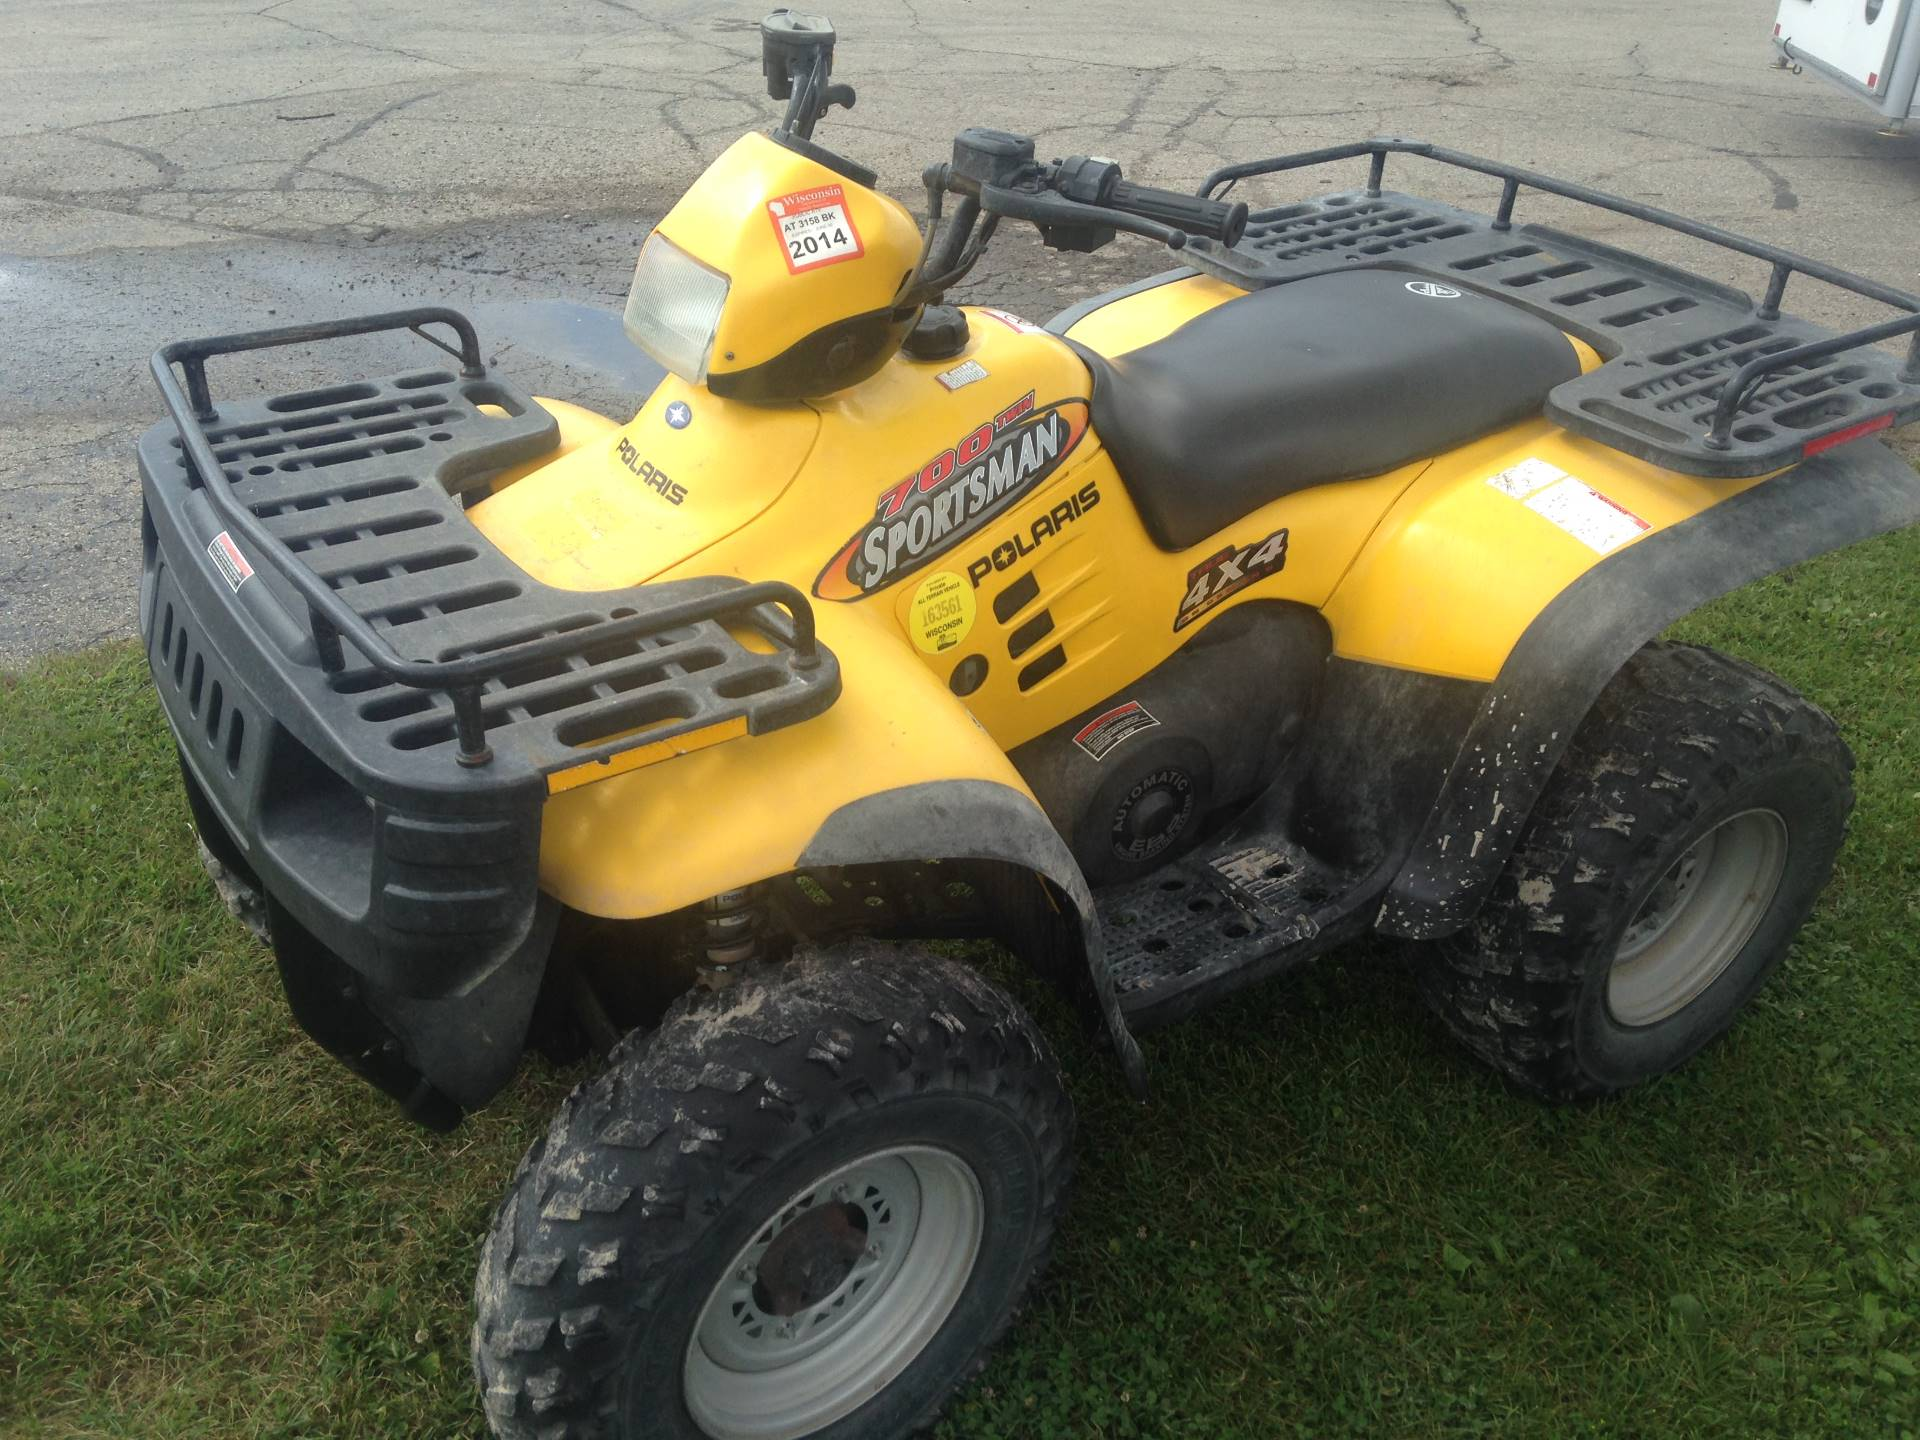 2002 Sportsman 700 Twin